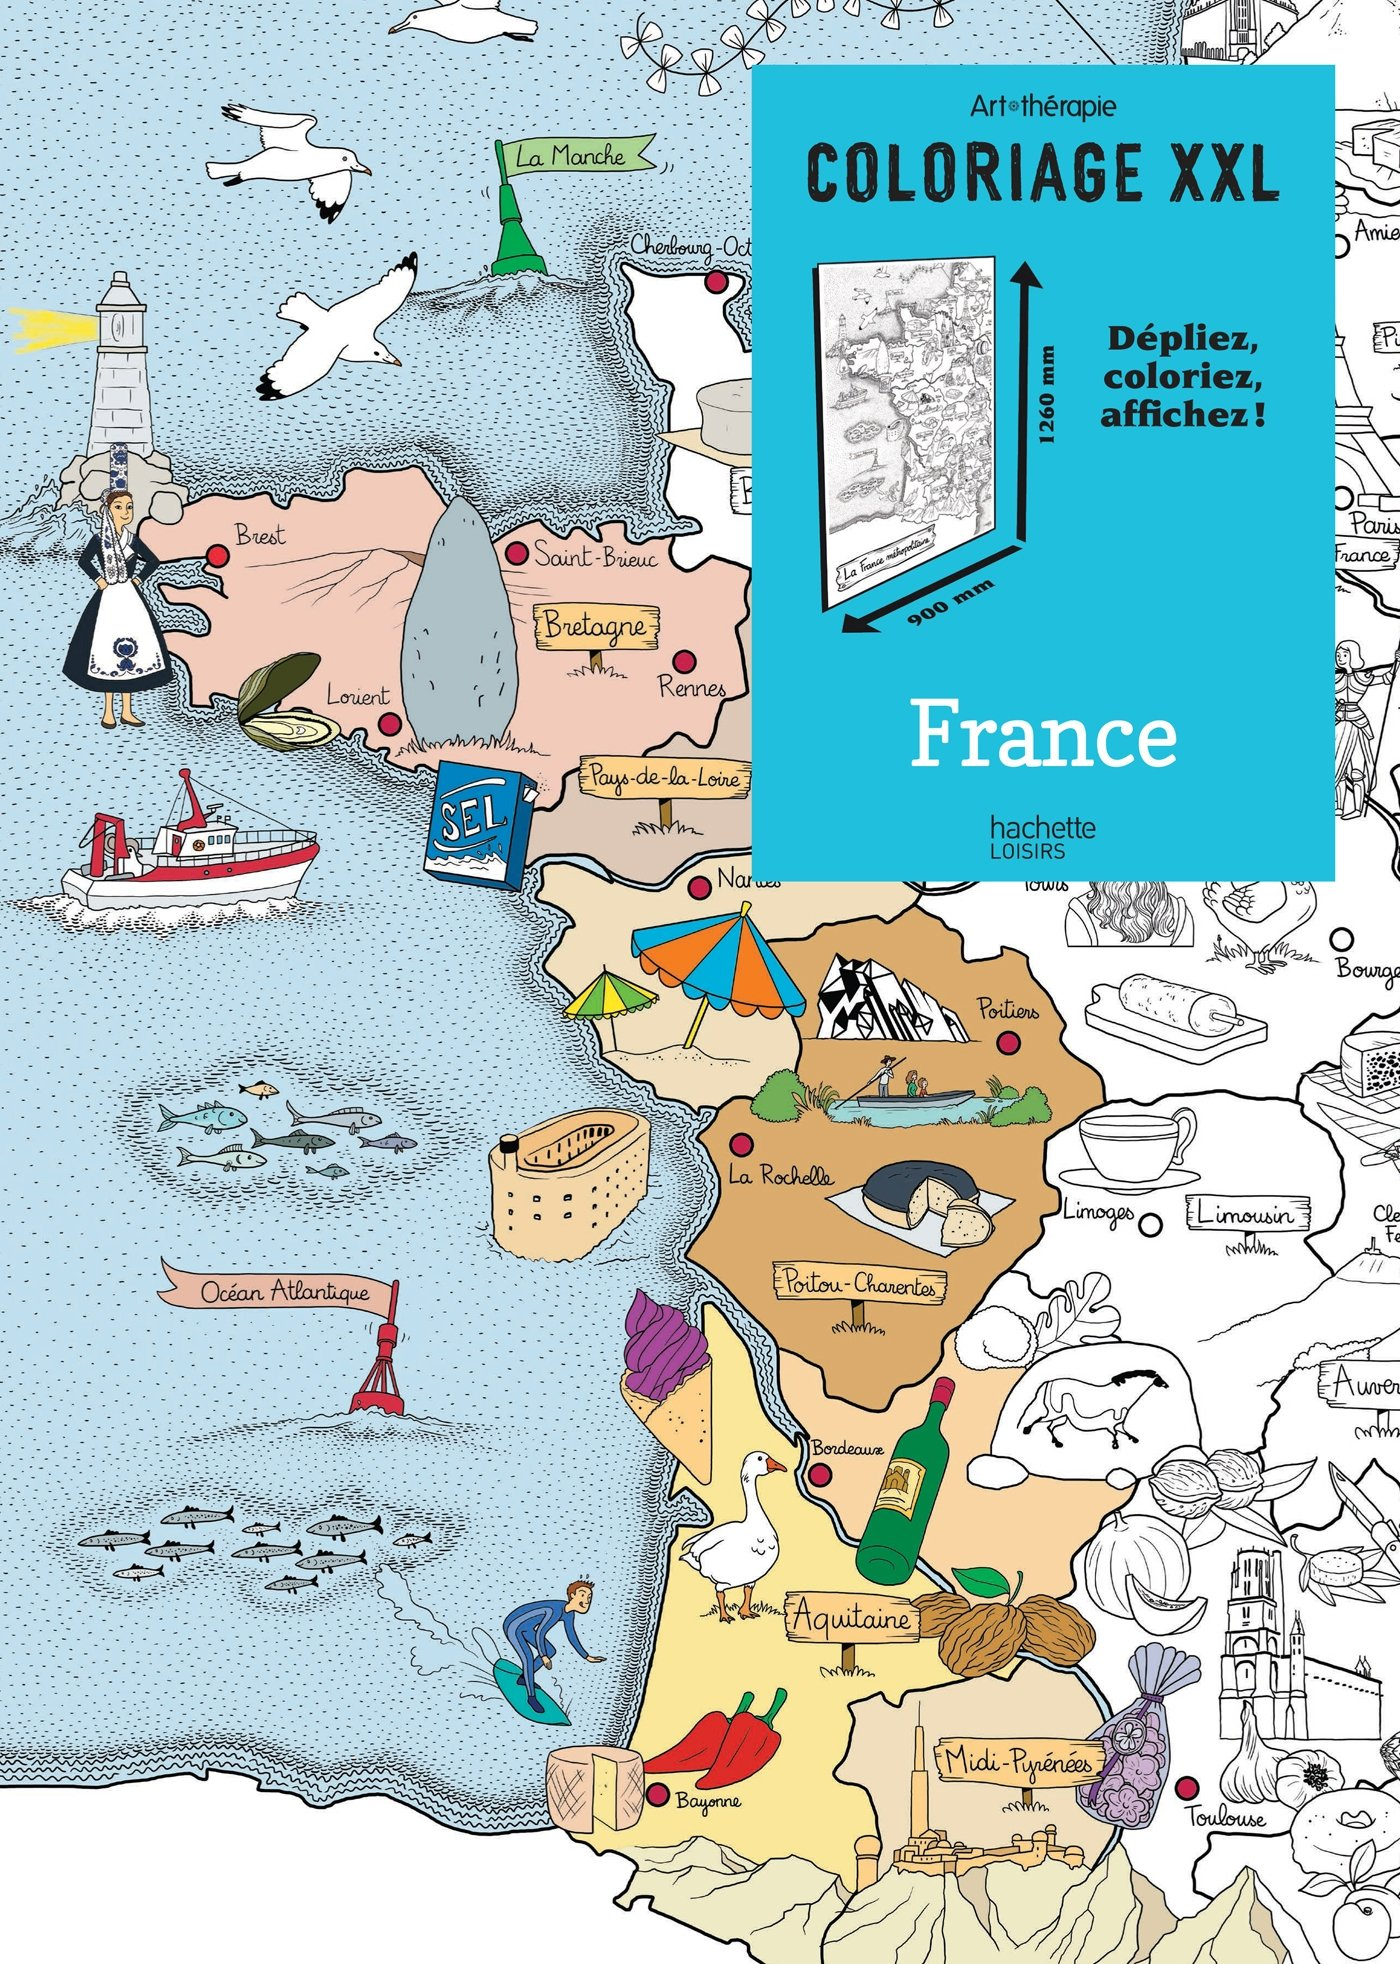 carte de france à colorier Coloriage XXL France   depliez, colorier, affichez! (Loisirs